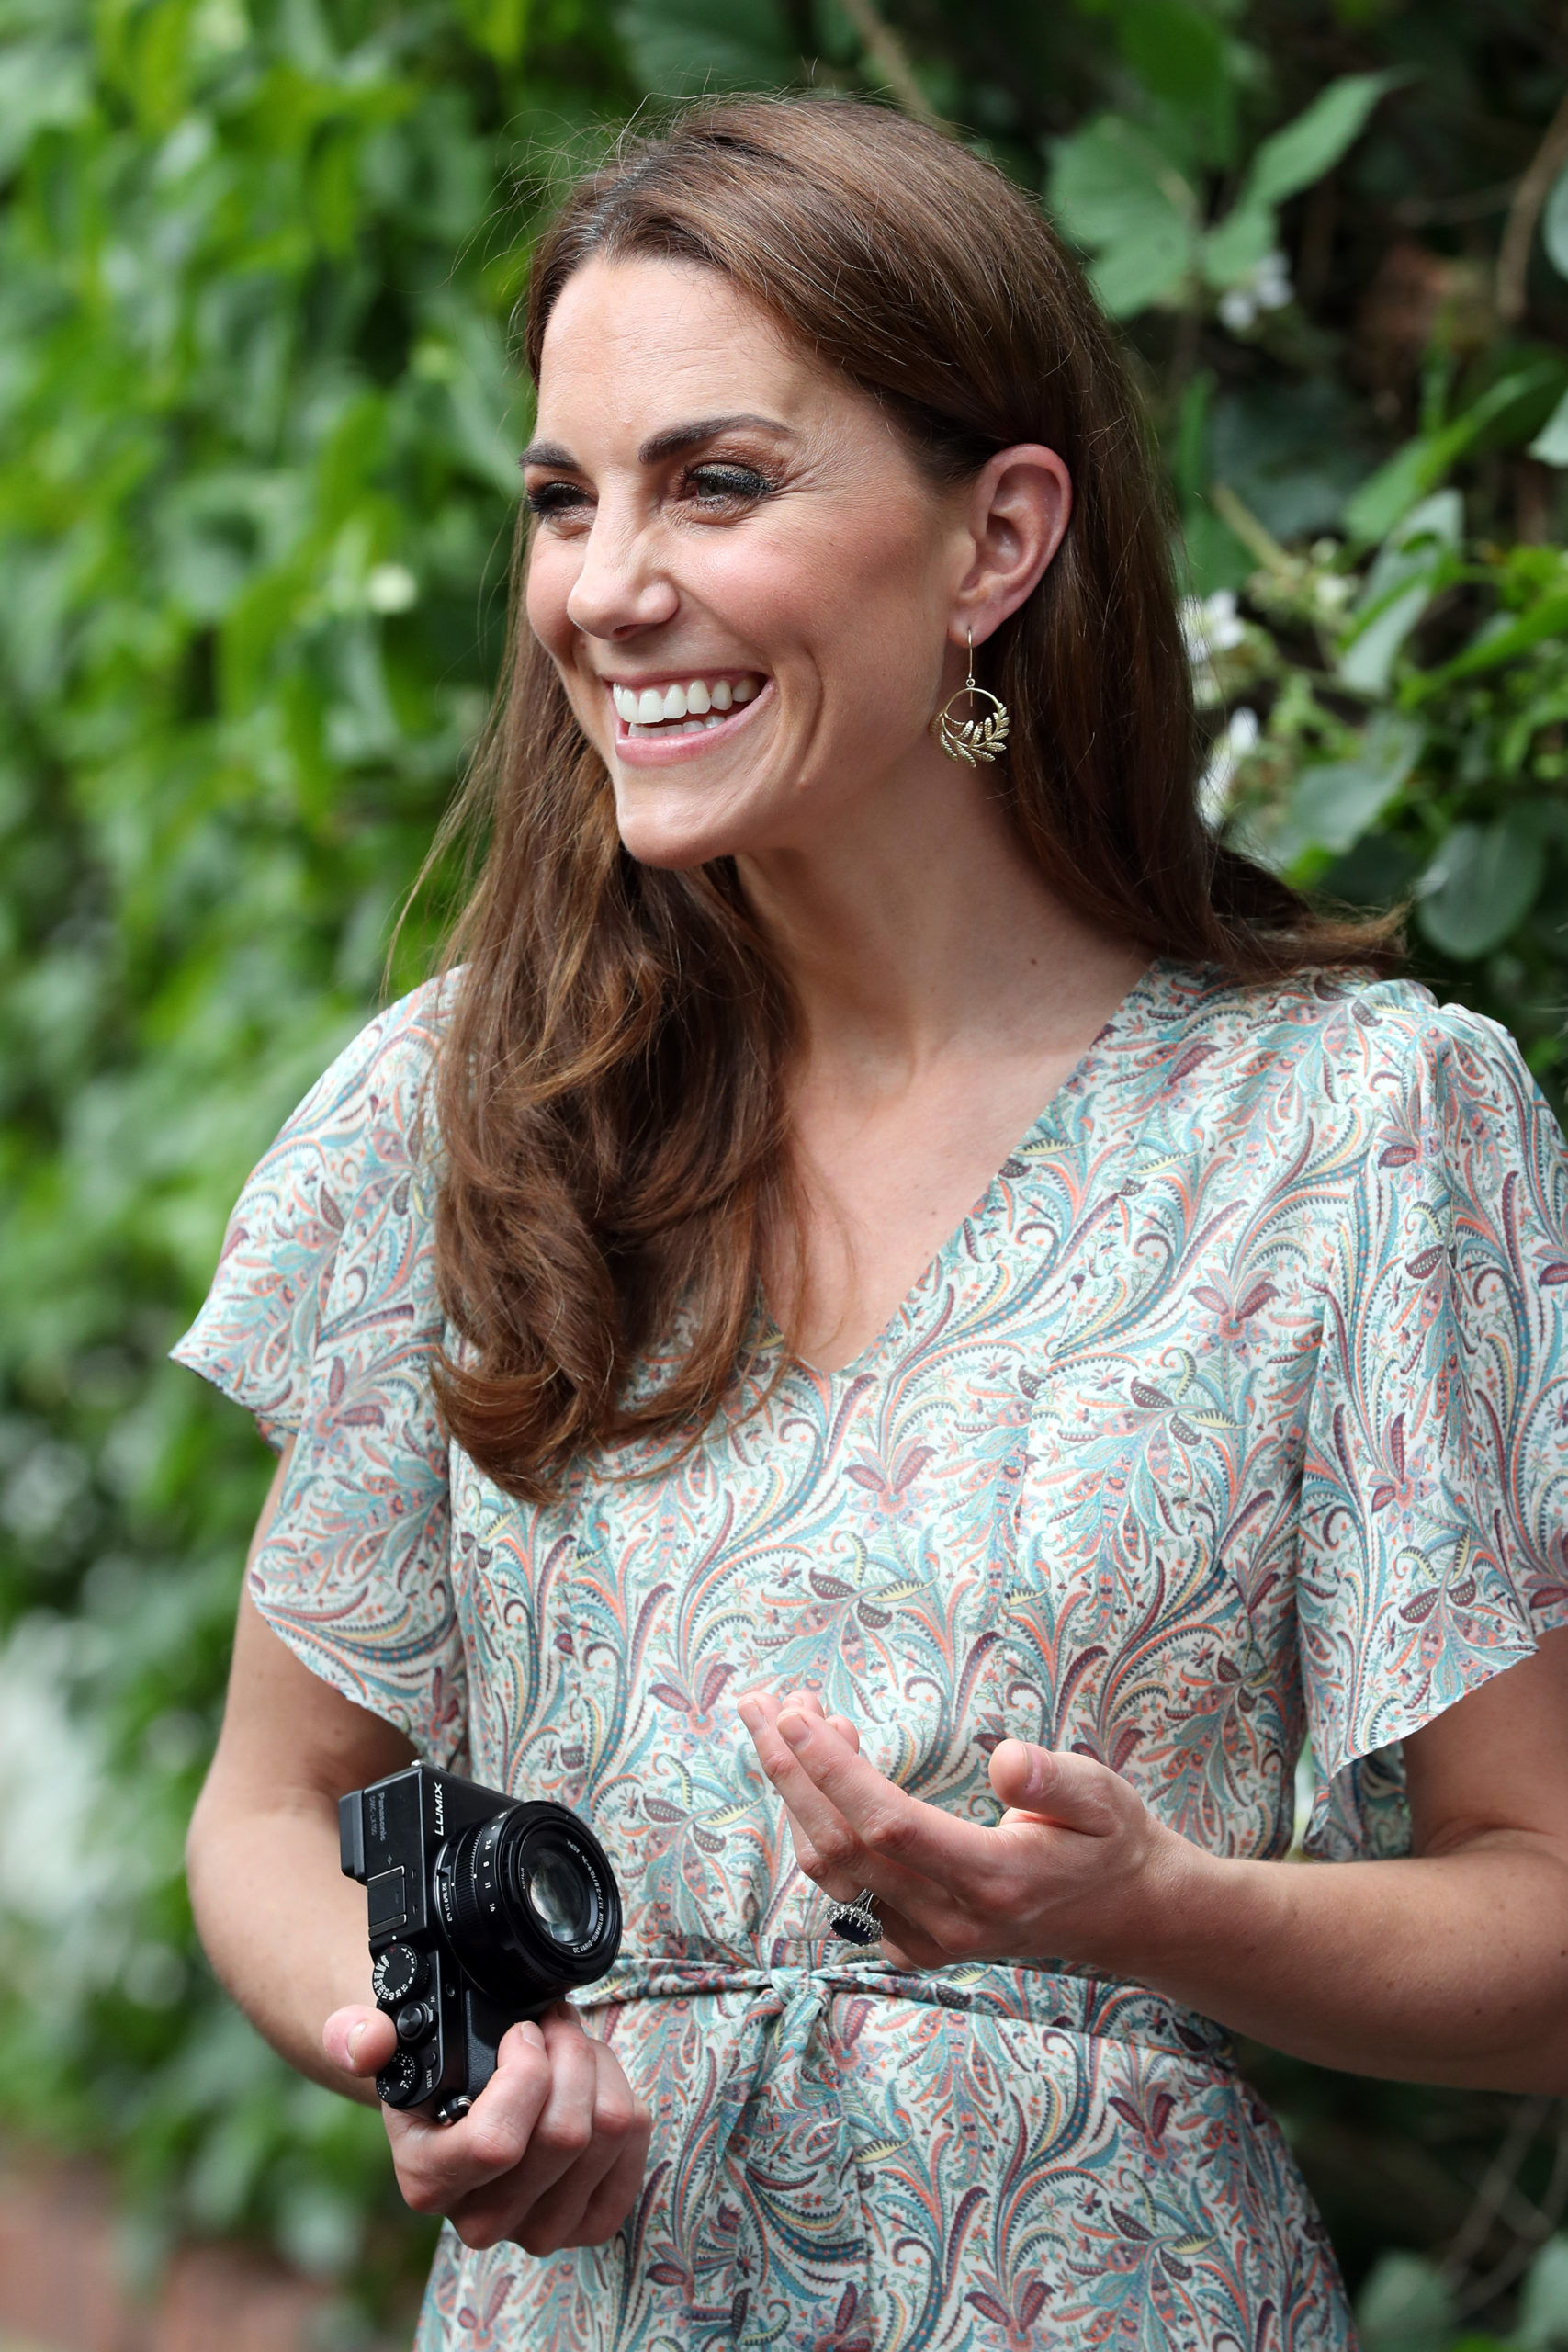 Kate Middleton appasionata di fotografia